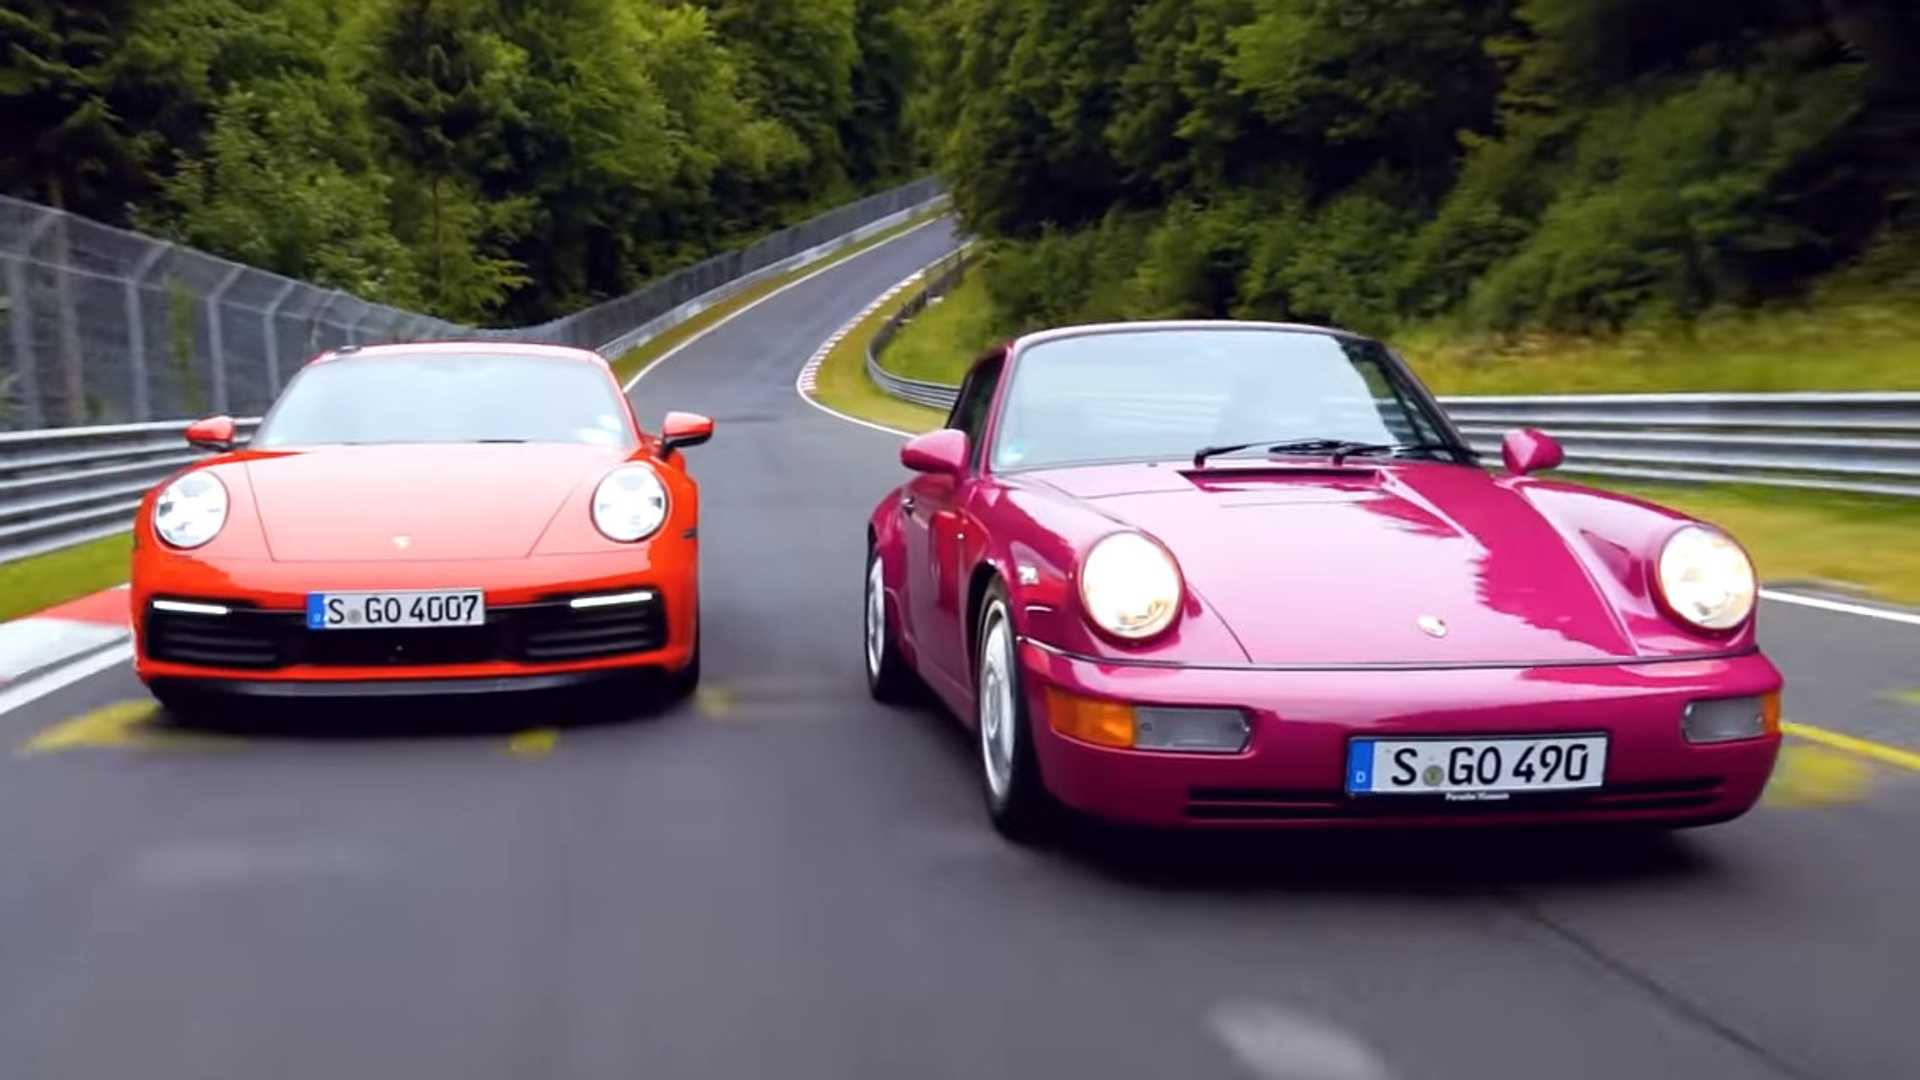 New Vs Old 911 On The 'Ring Shows How Fast The 992 Really Is